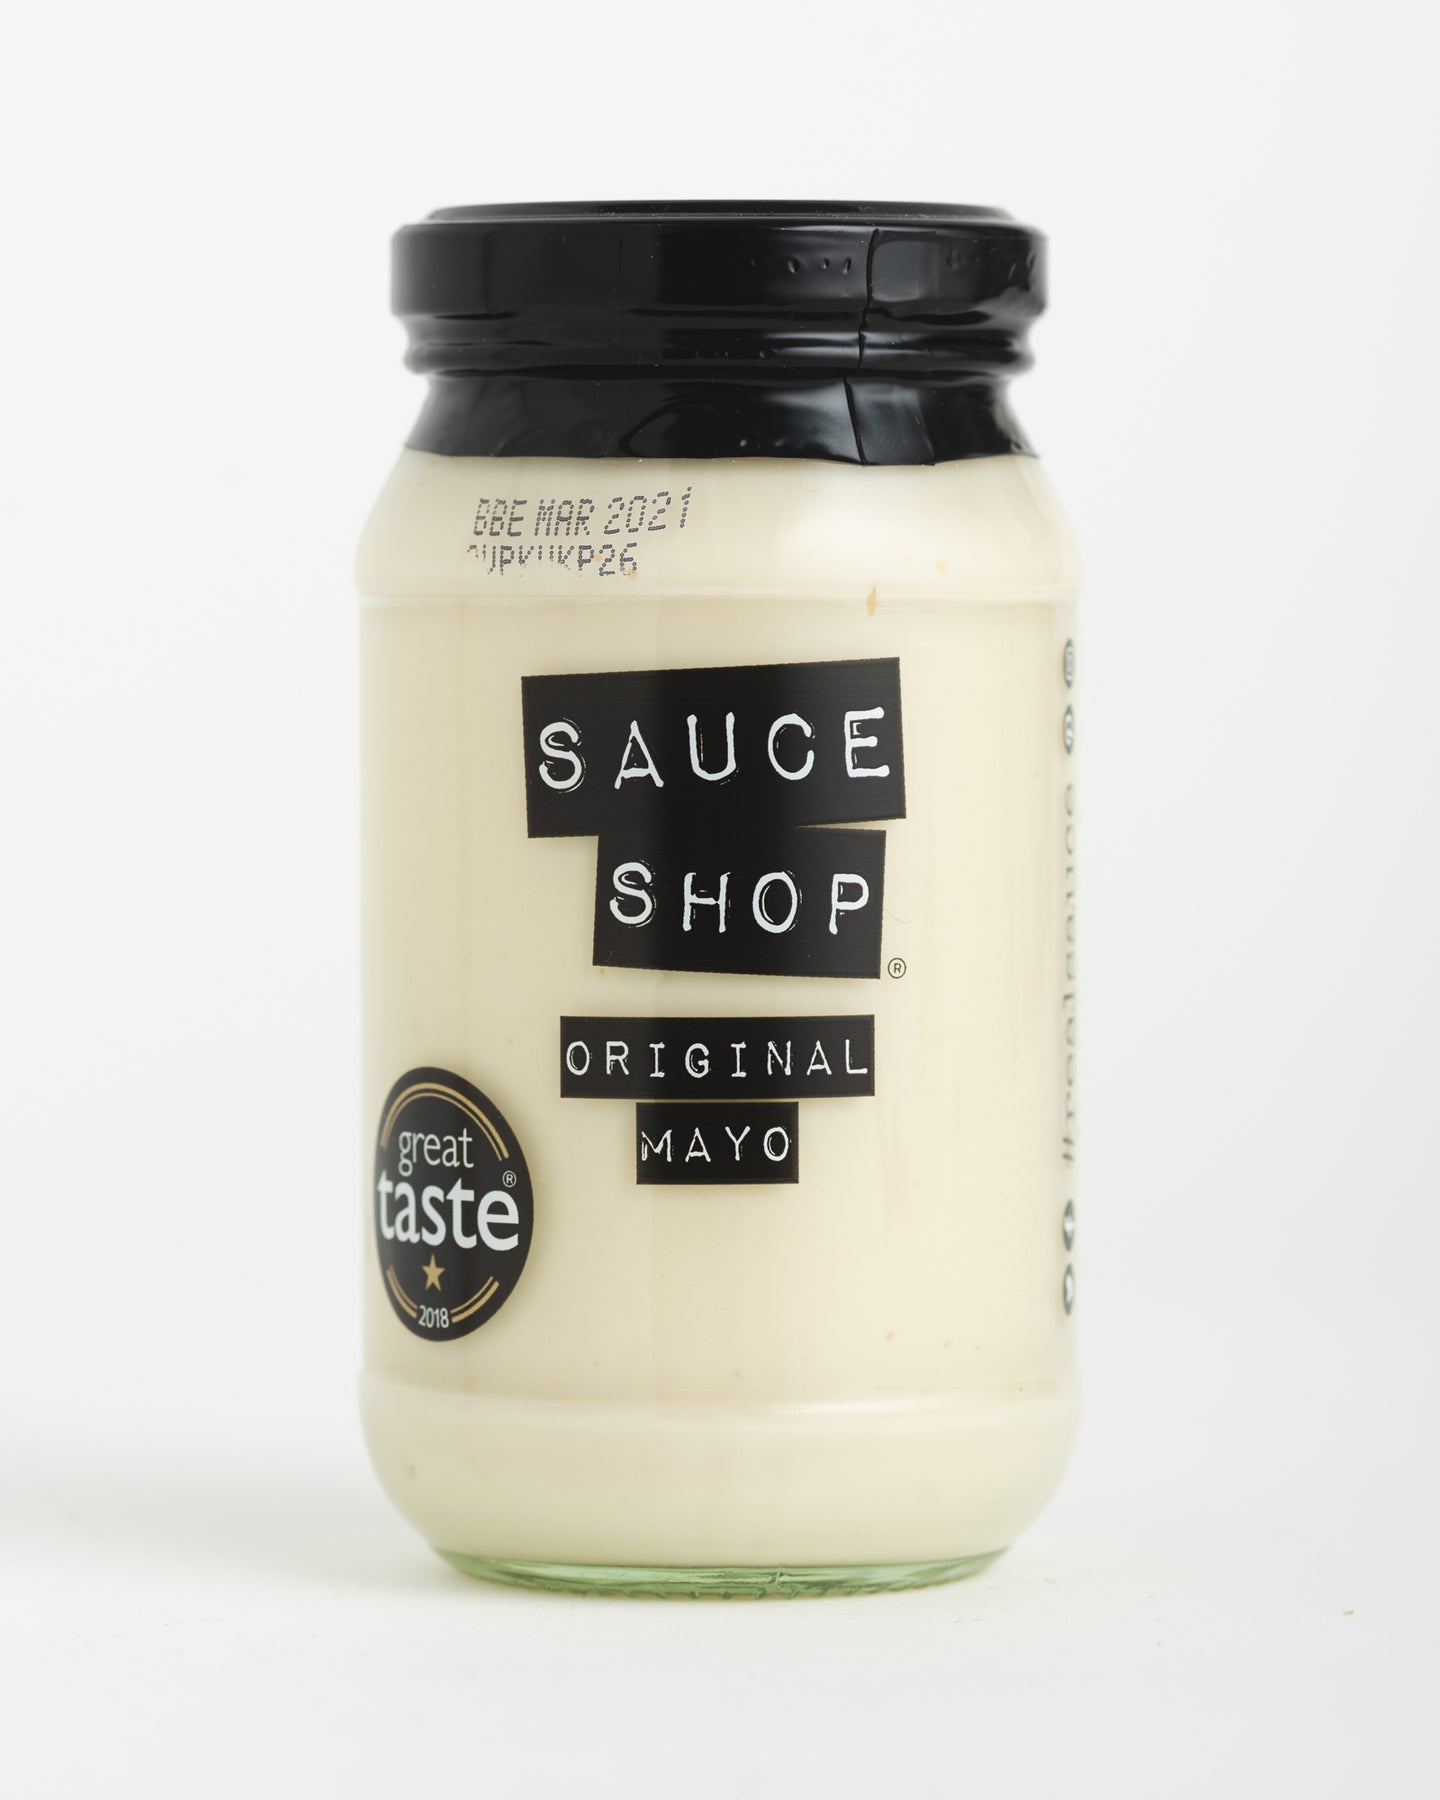 Sauce Shop - Original Mayo